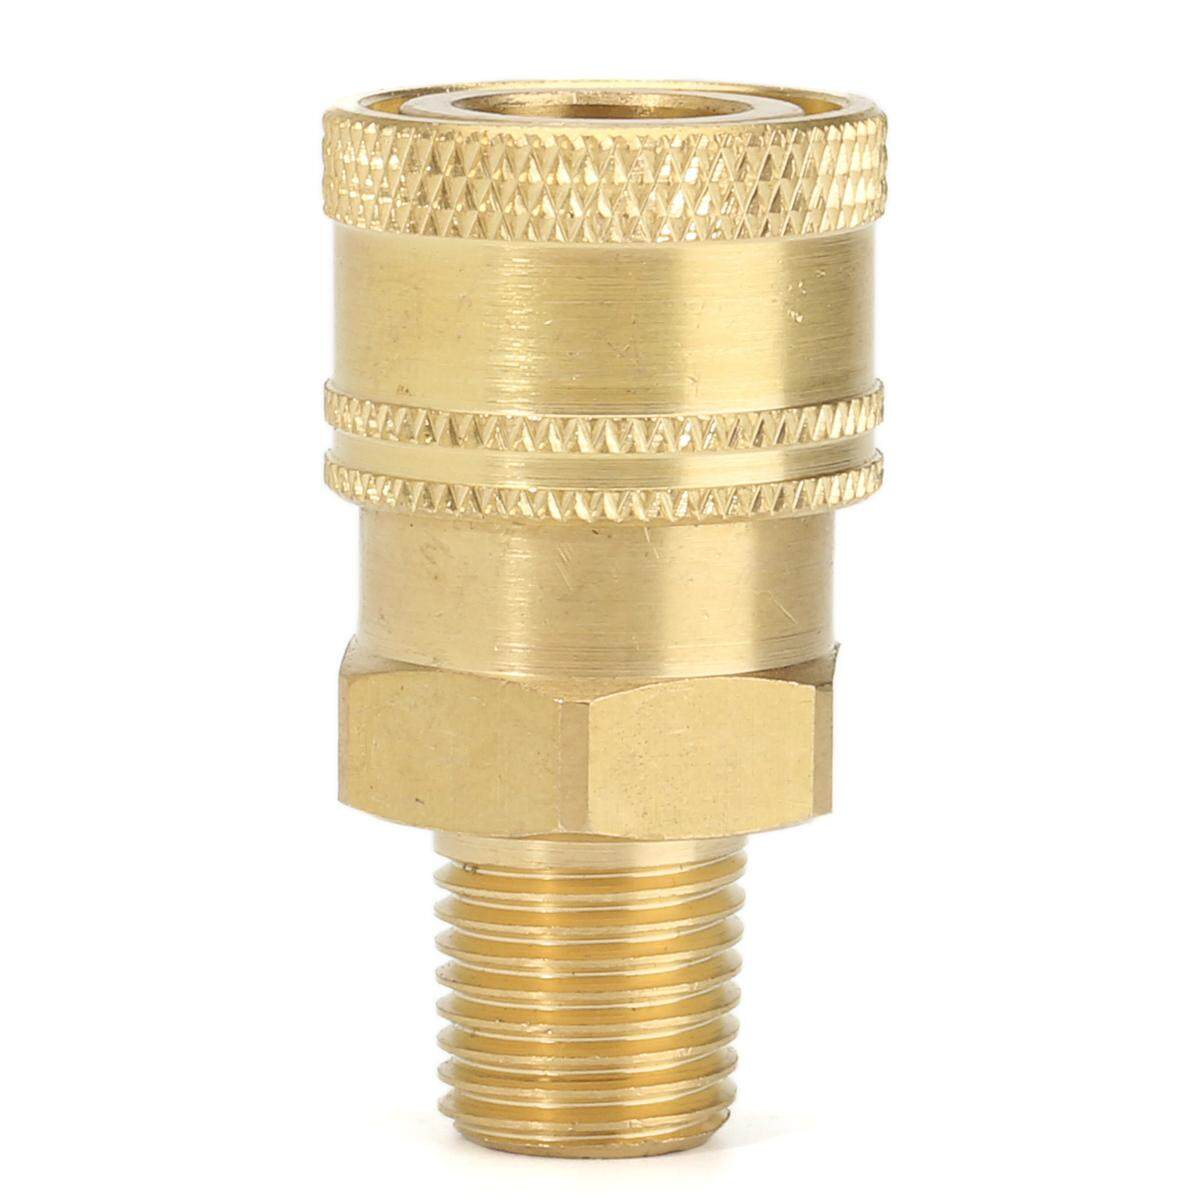 2pcs Pressure Washer 1/4 Male (NPT) Brass Quick Connect Coupler